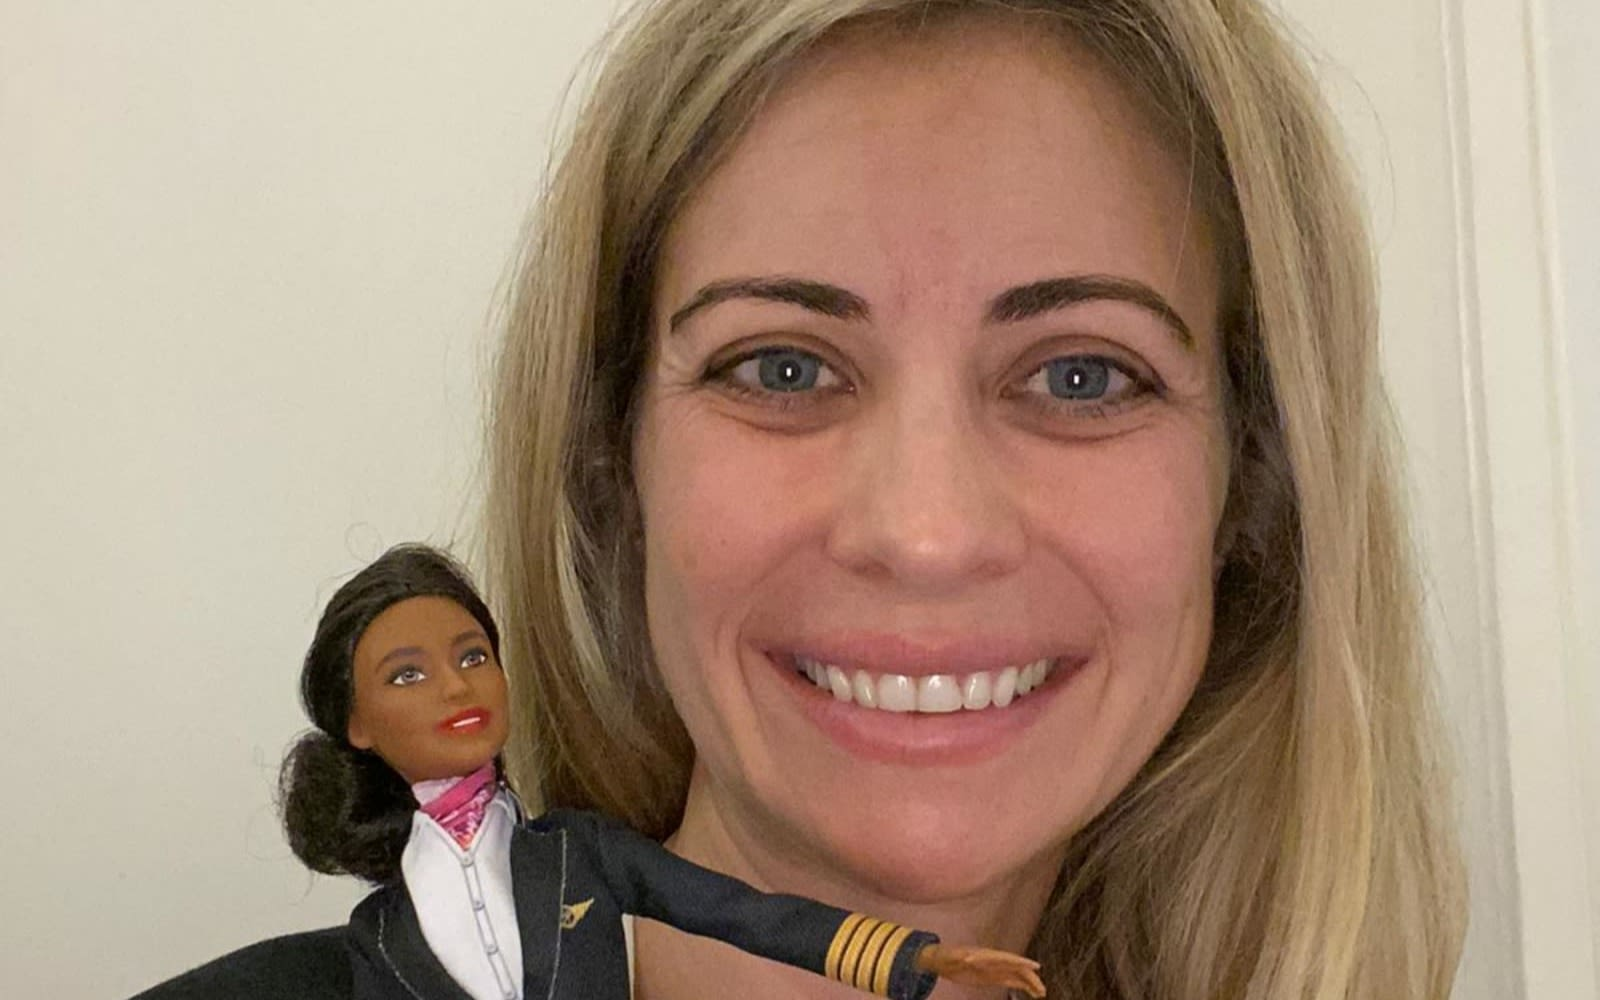 Holly Branson smiling, holding a Barbie doll dressed in a pilot's uniform